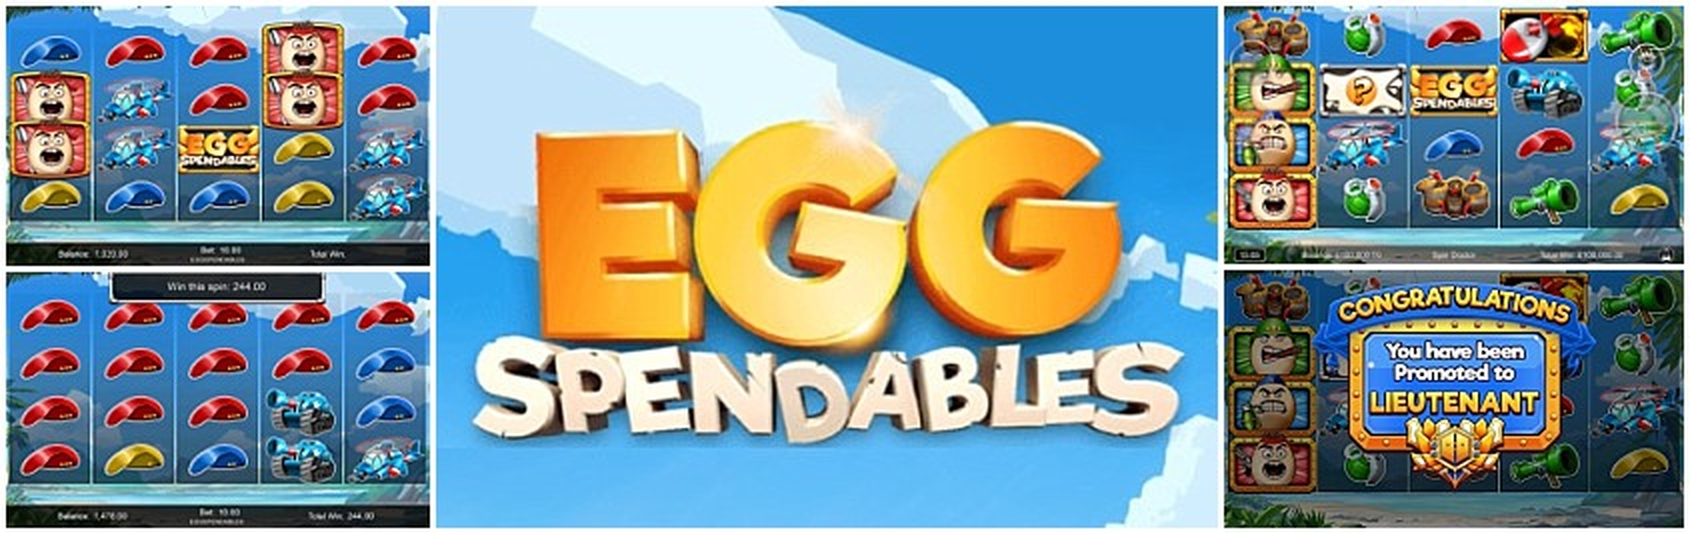 Se Eggspendables Online Slot Demo Game, Incredible Technologies